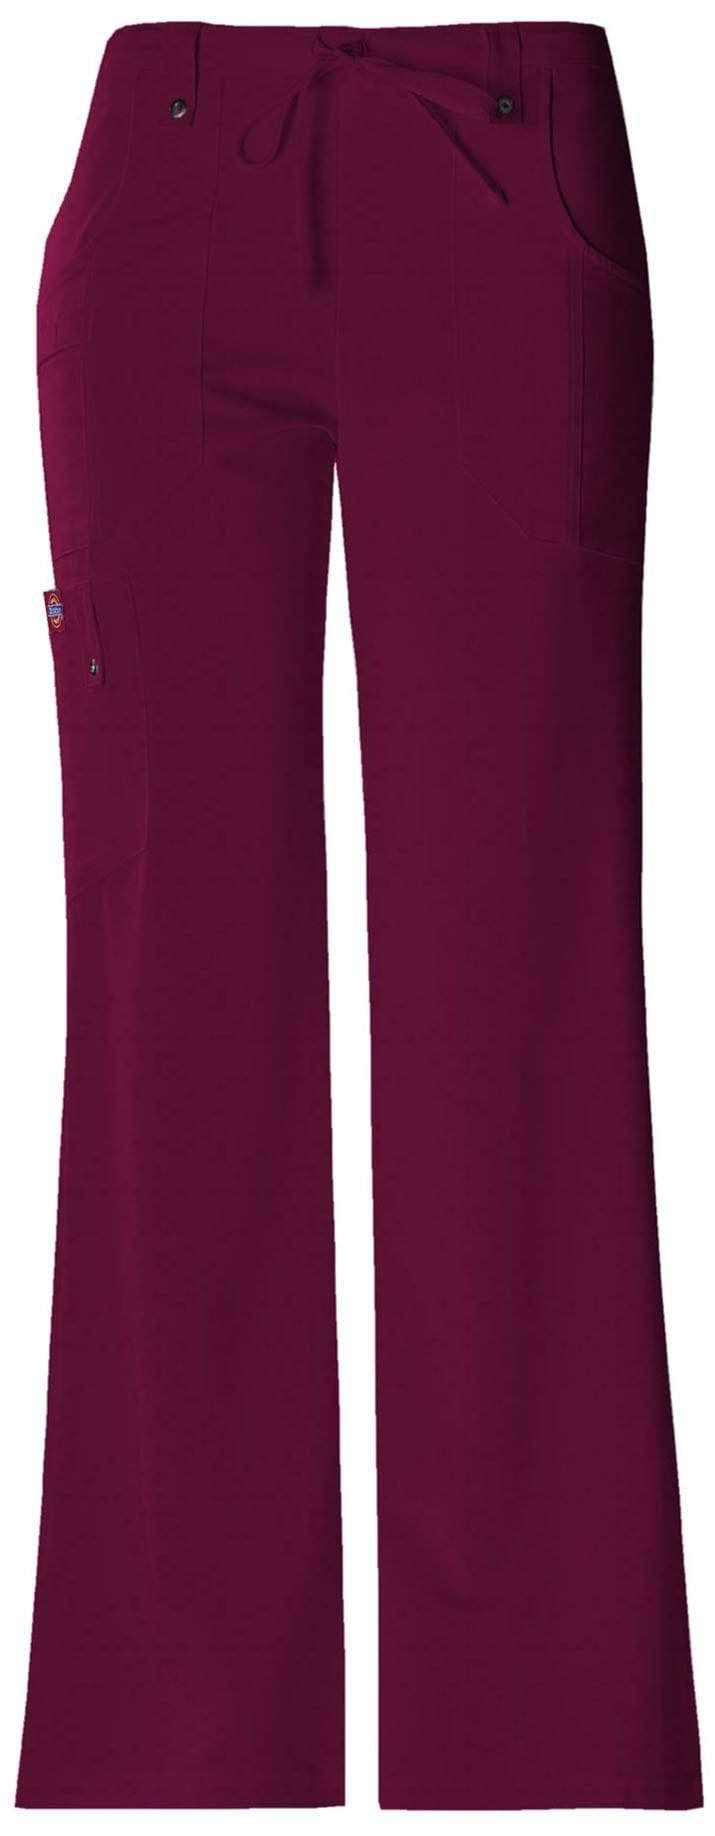 Dickies Women's Xtreme Stretch Fit Drawstring Flare Leg Pant - Wine, Large Tall